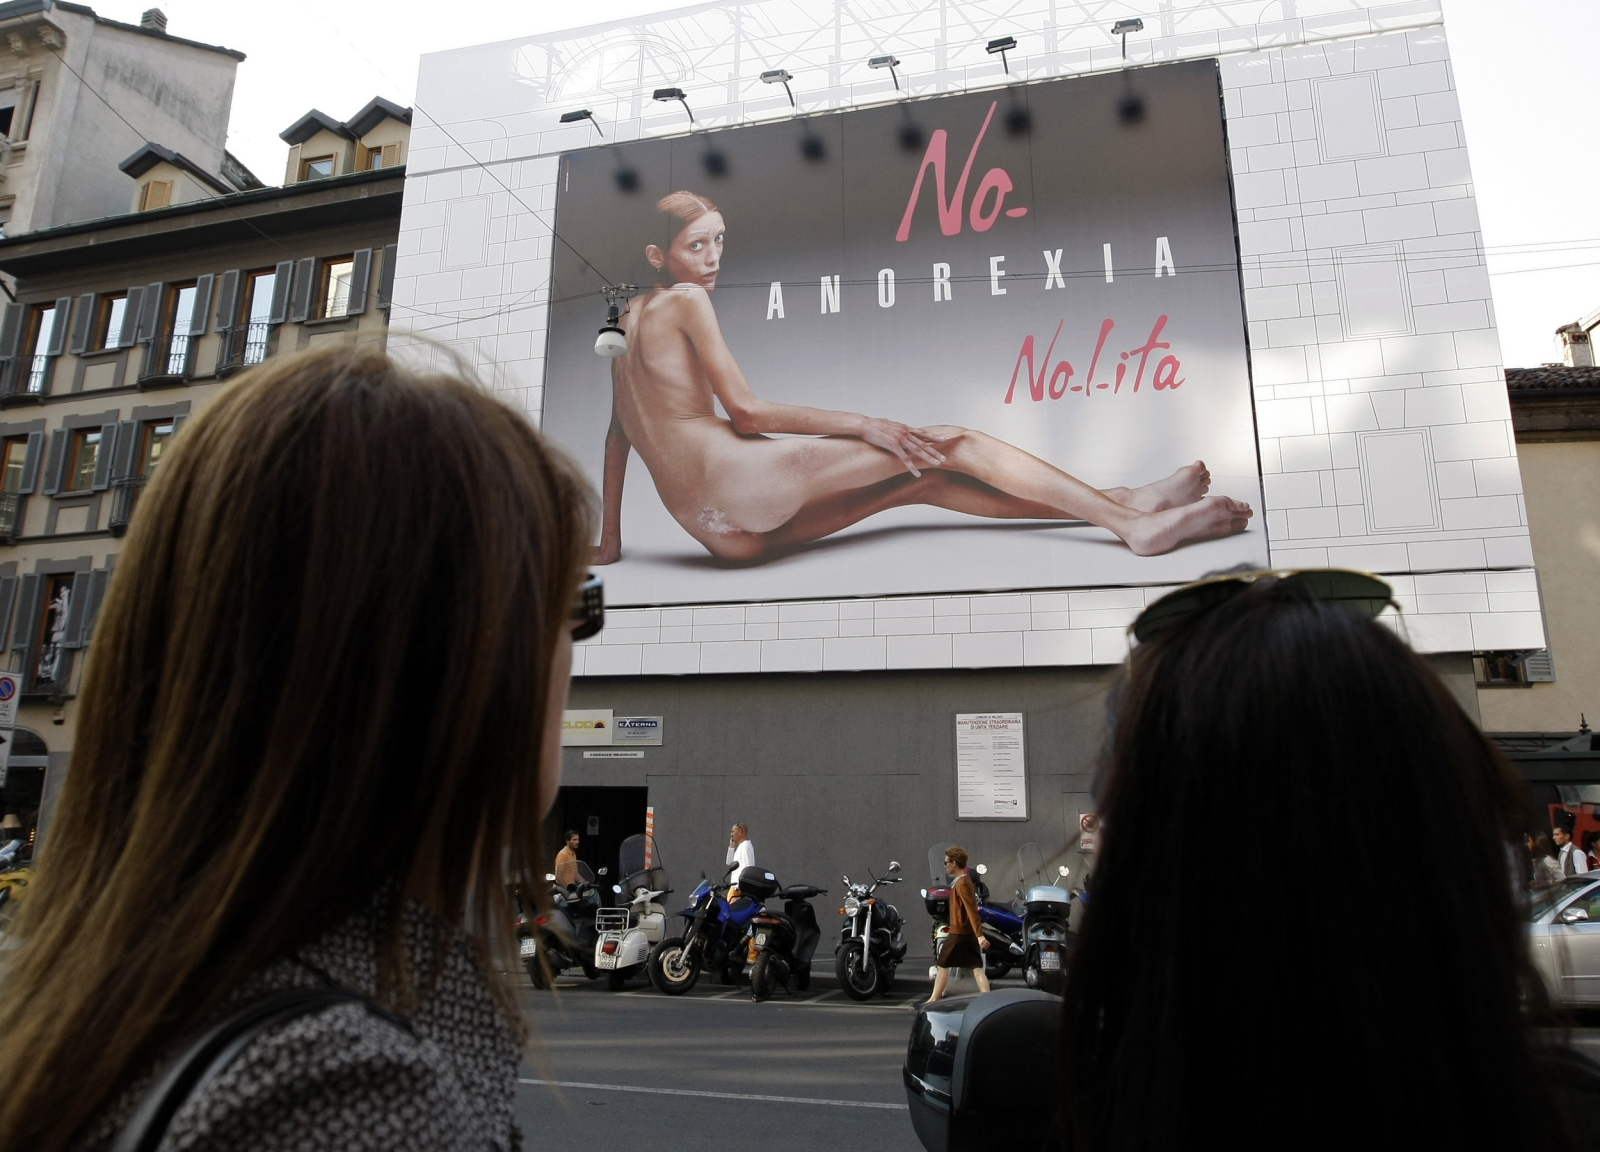 Emaciated woman billboard Milan